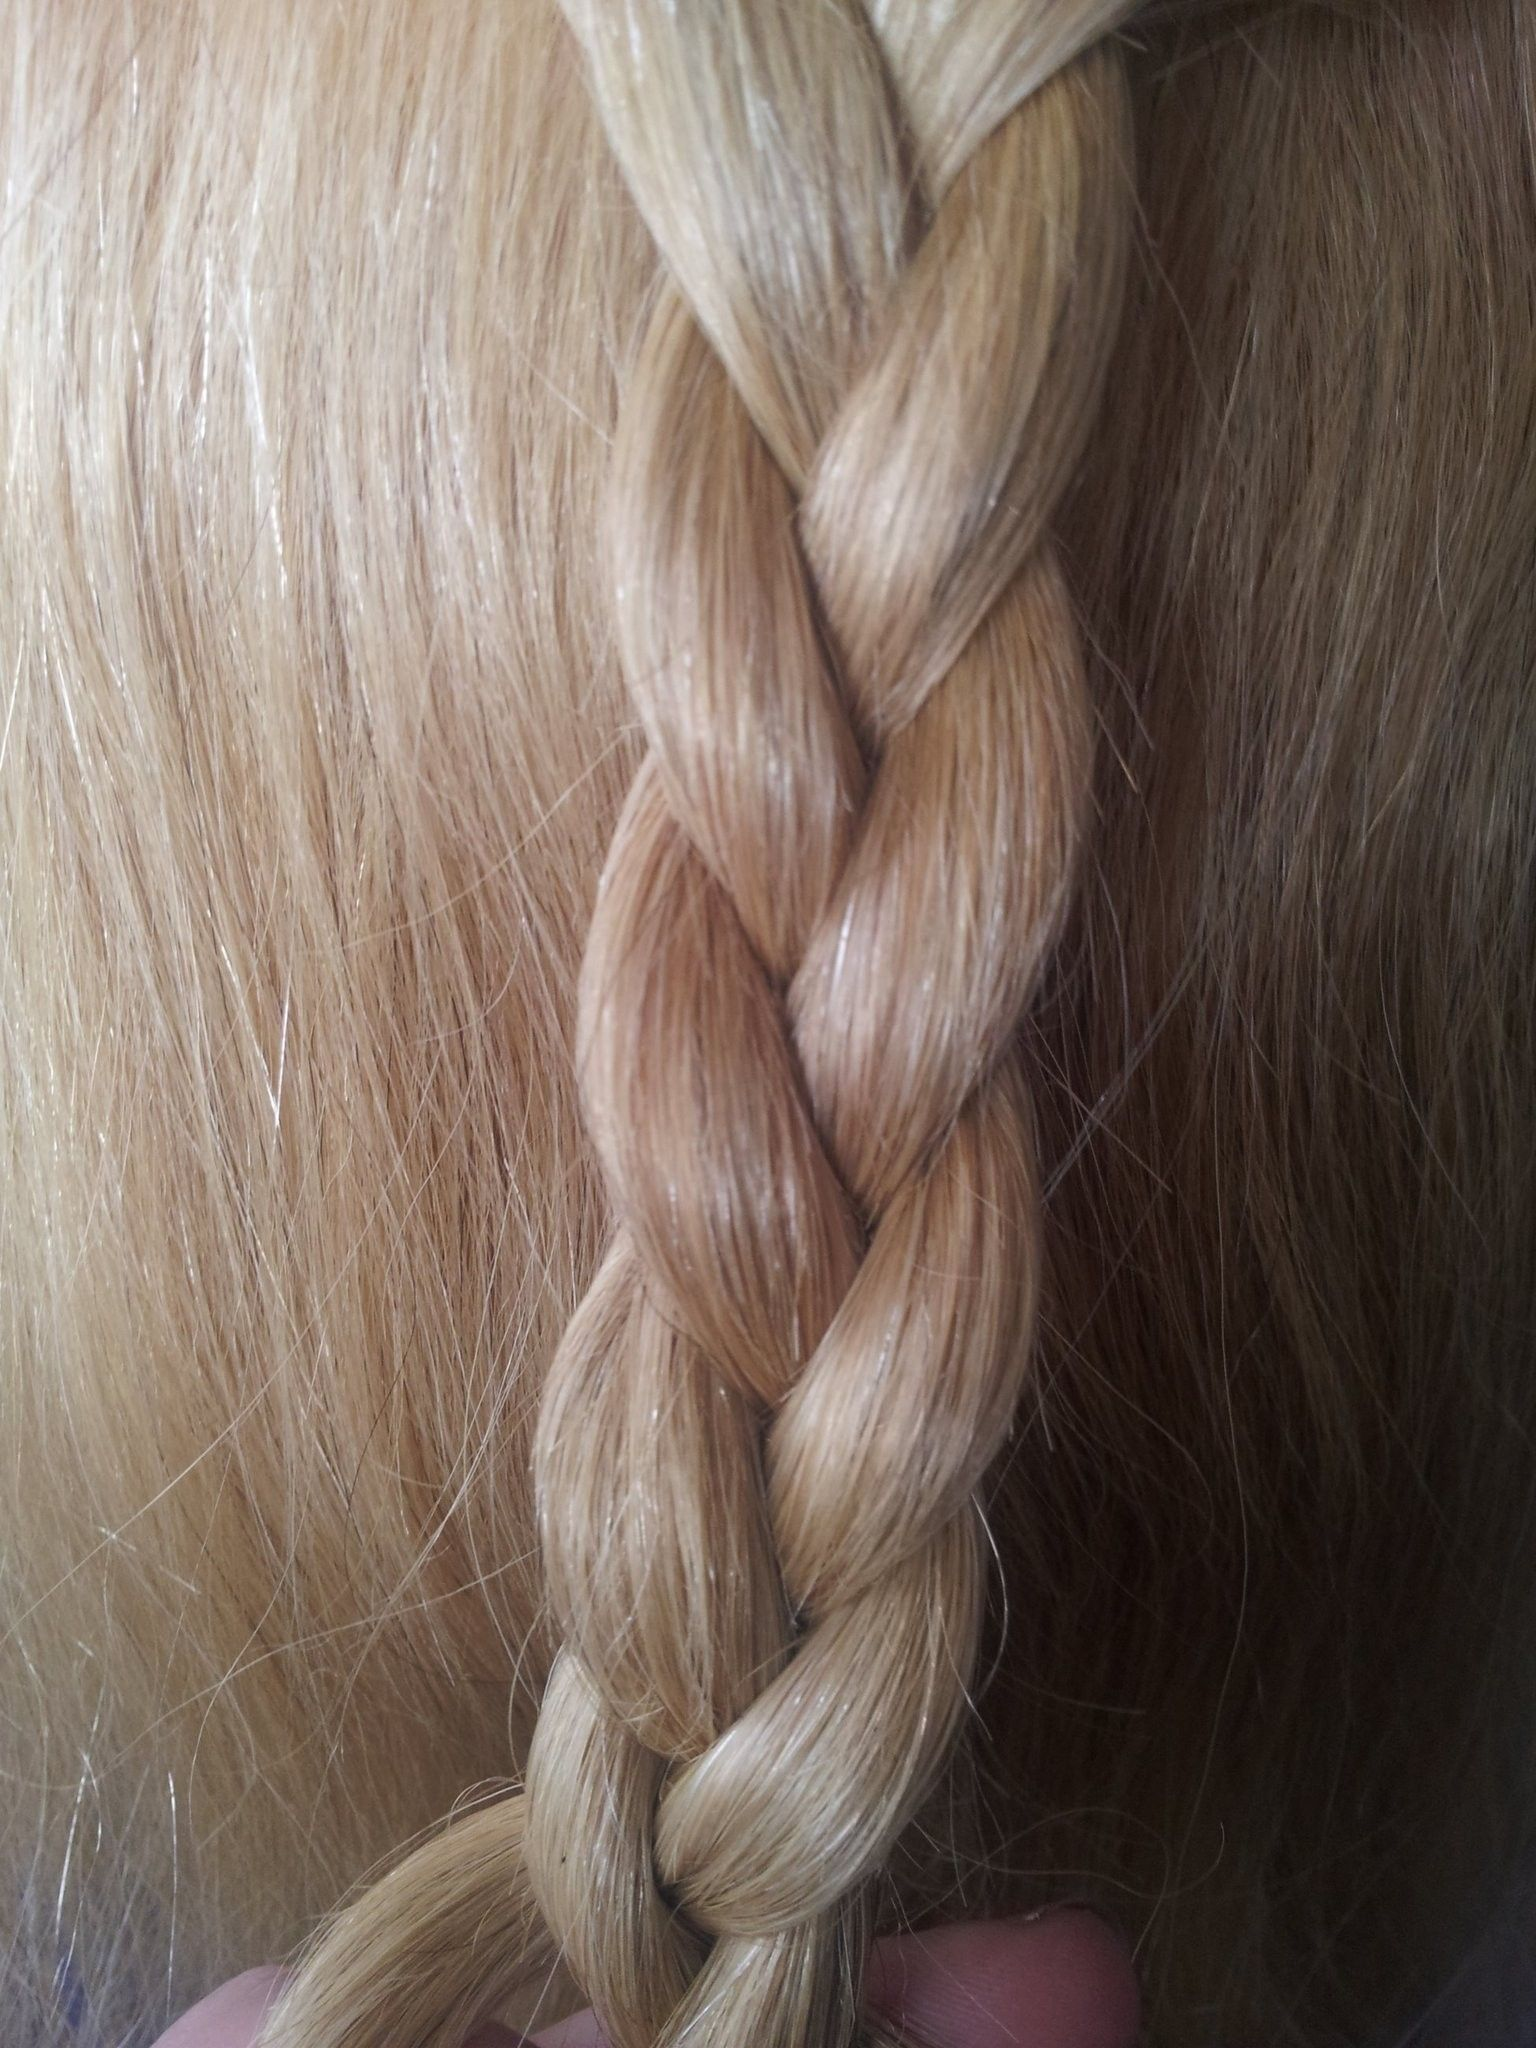 three strand over braid hairstyle example (not done by me